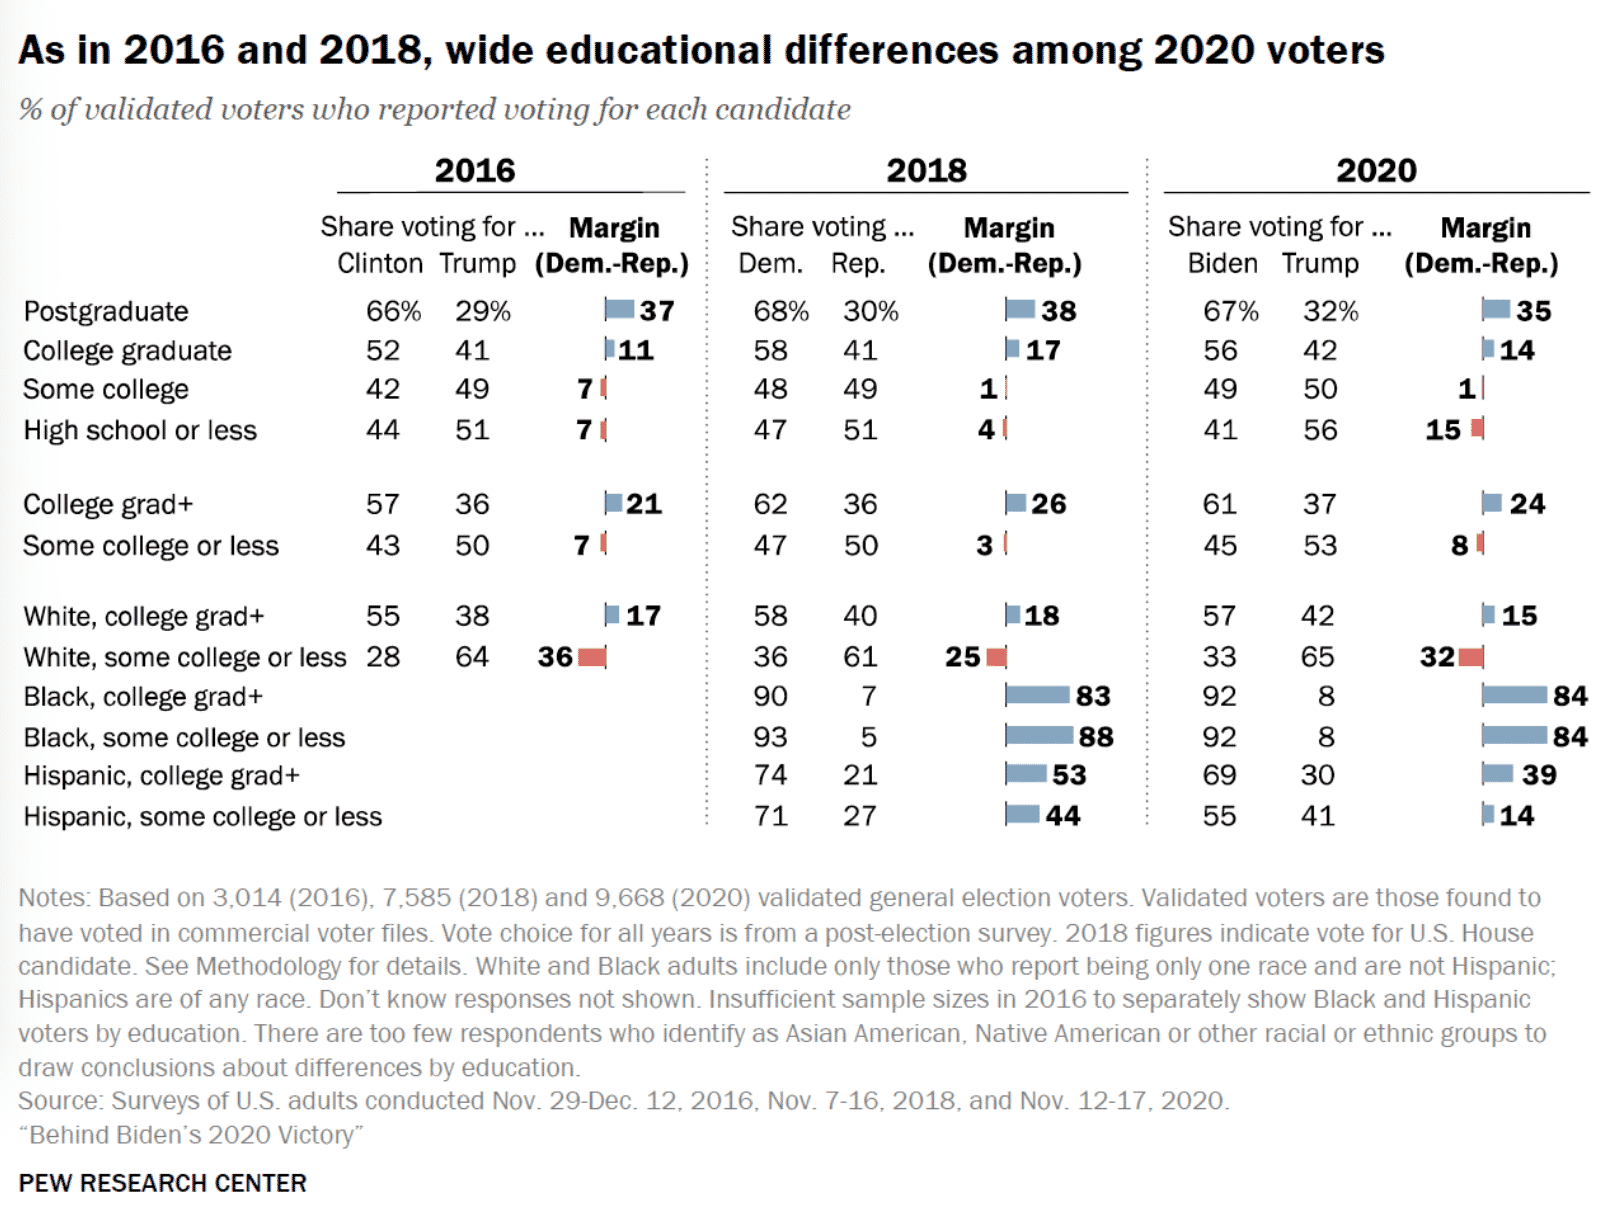 Pew Research: Trump Boosted Hispanic Support in 2020 Election, Lost Ground with Blue Collar White Men 1